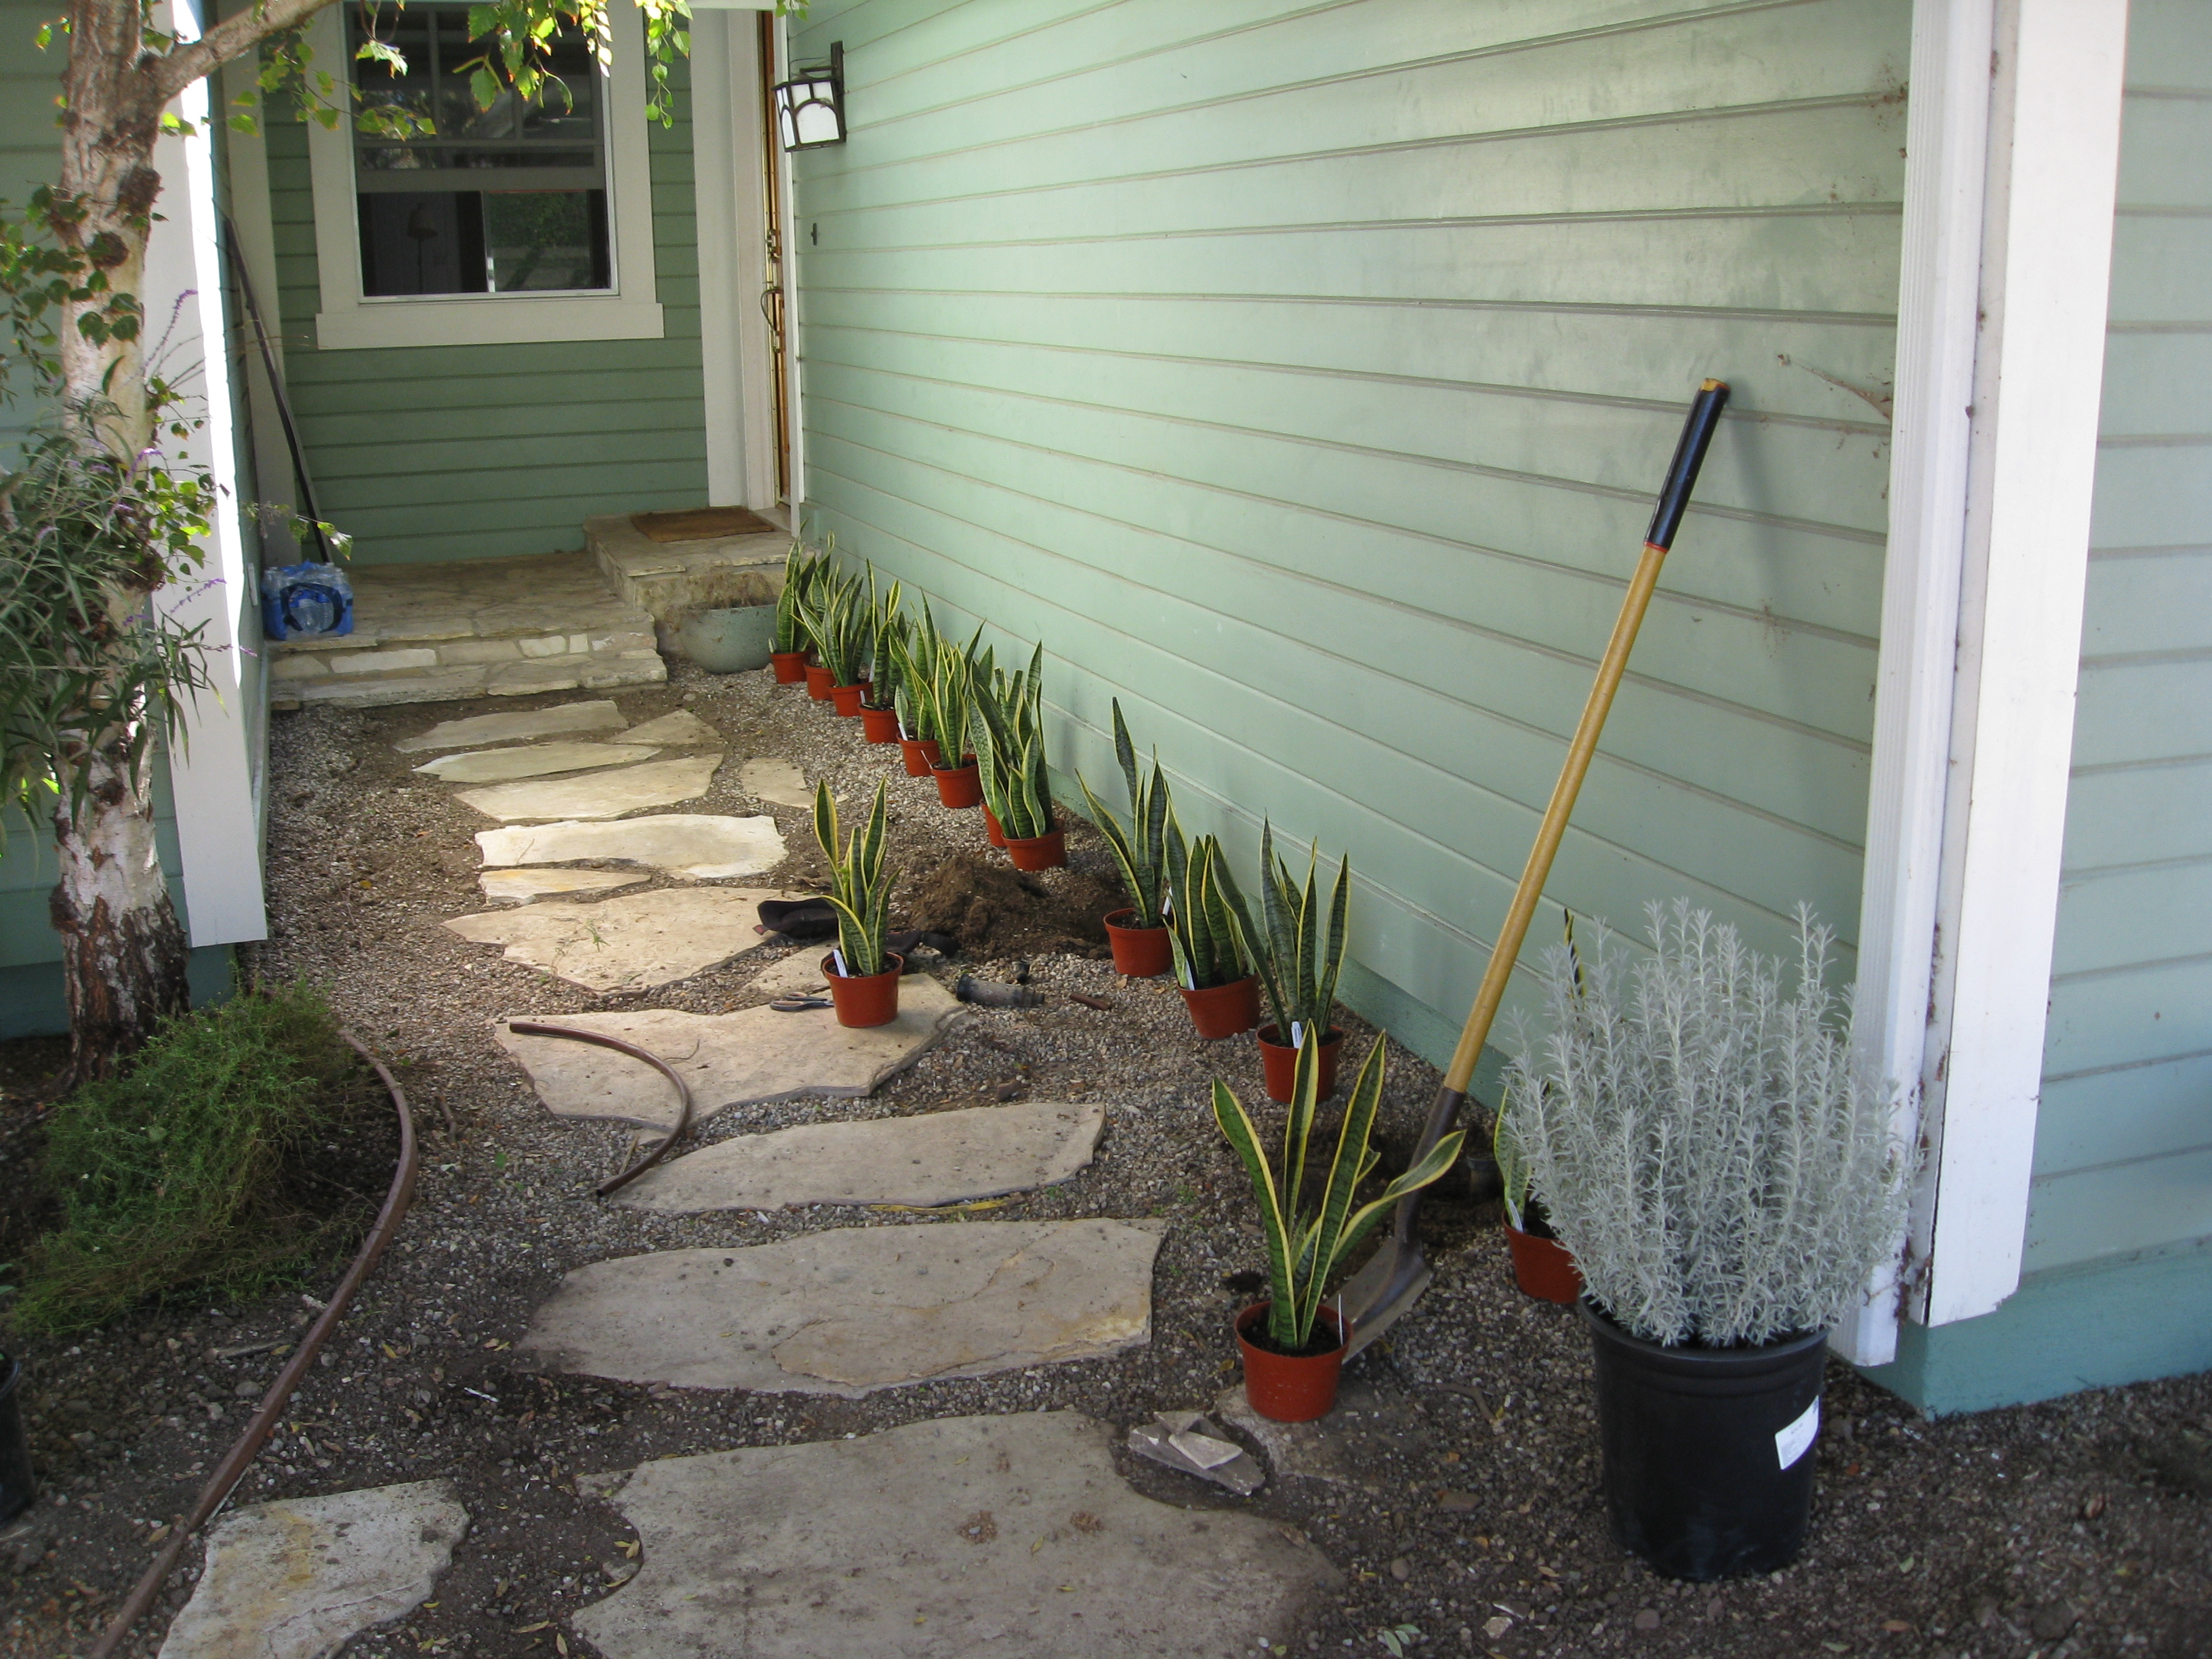 Shade plants line the pathway to the front door